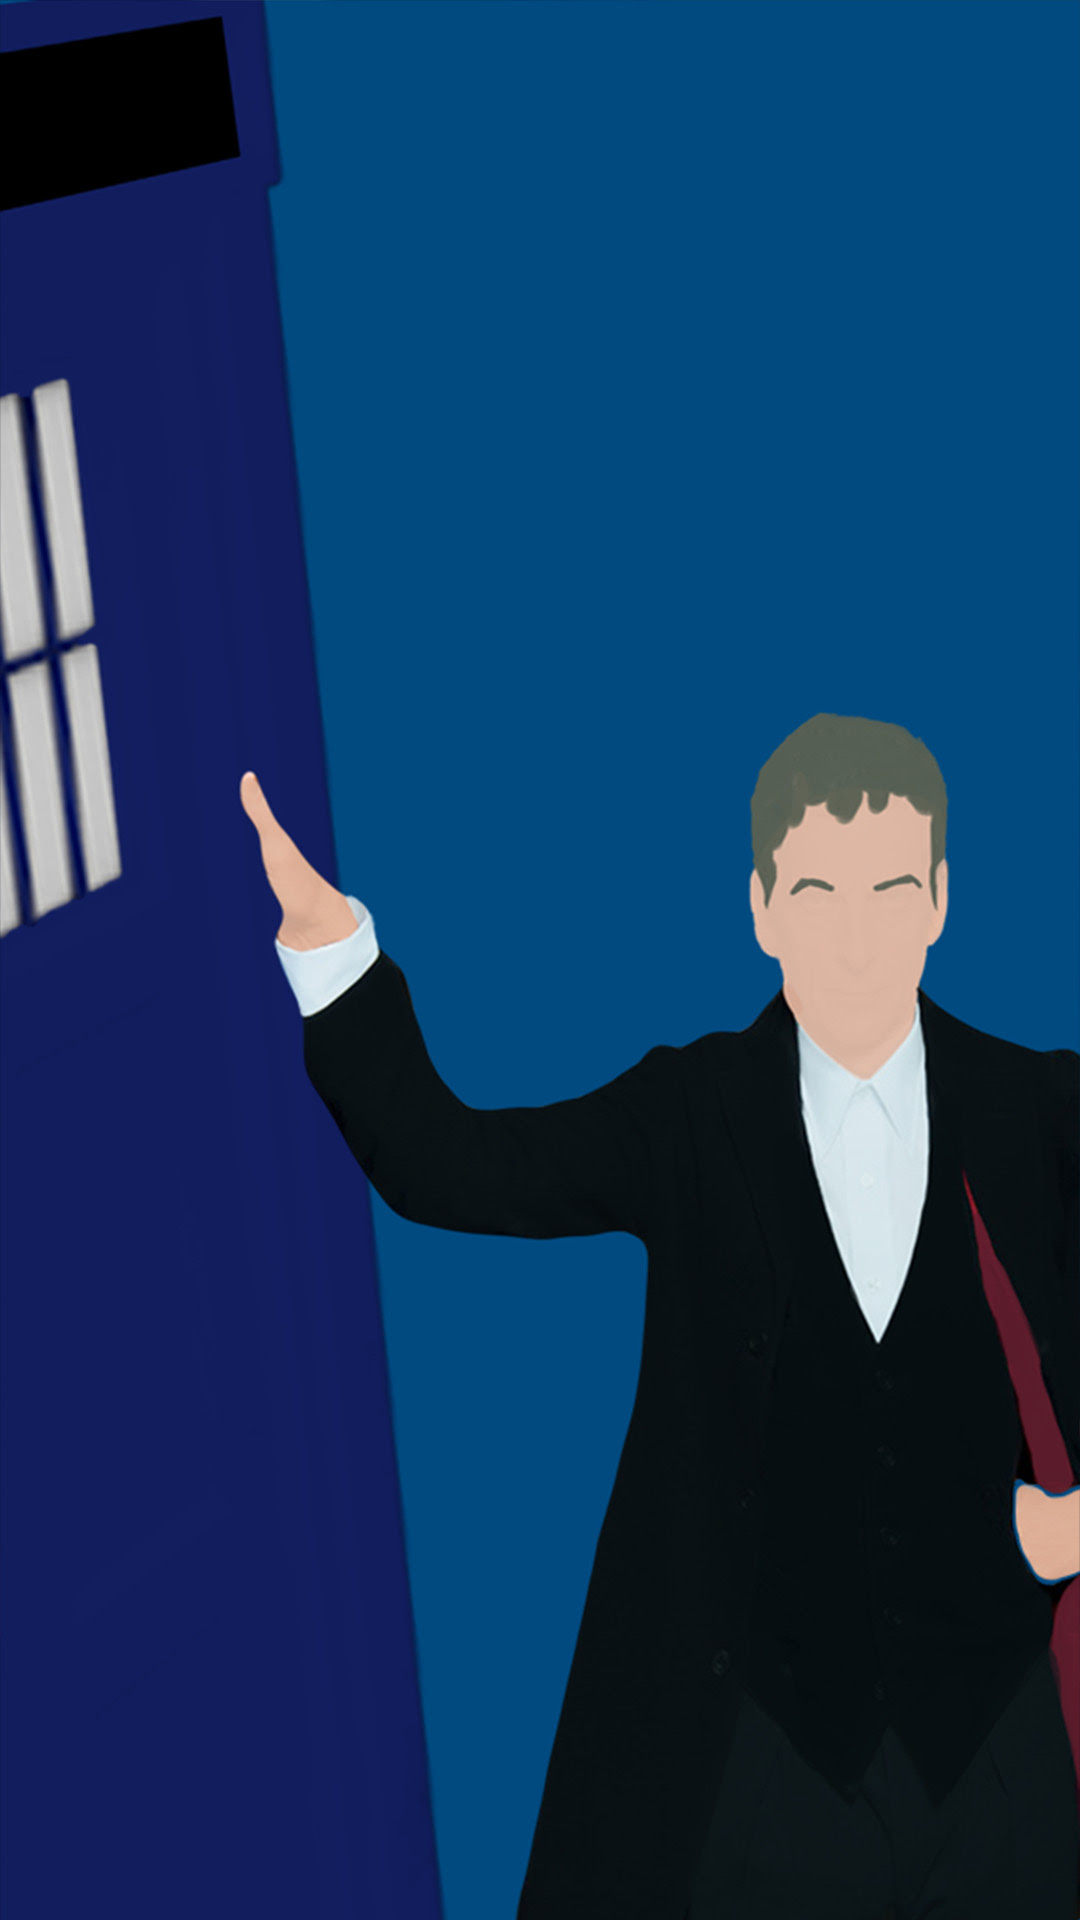 Doctor Who Iphone 6 Wallpaper 68 Images